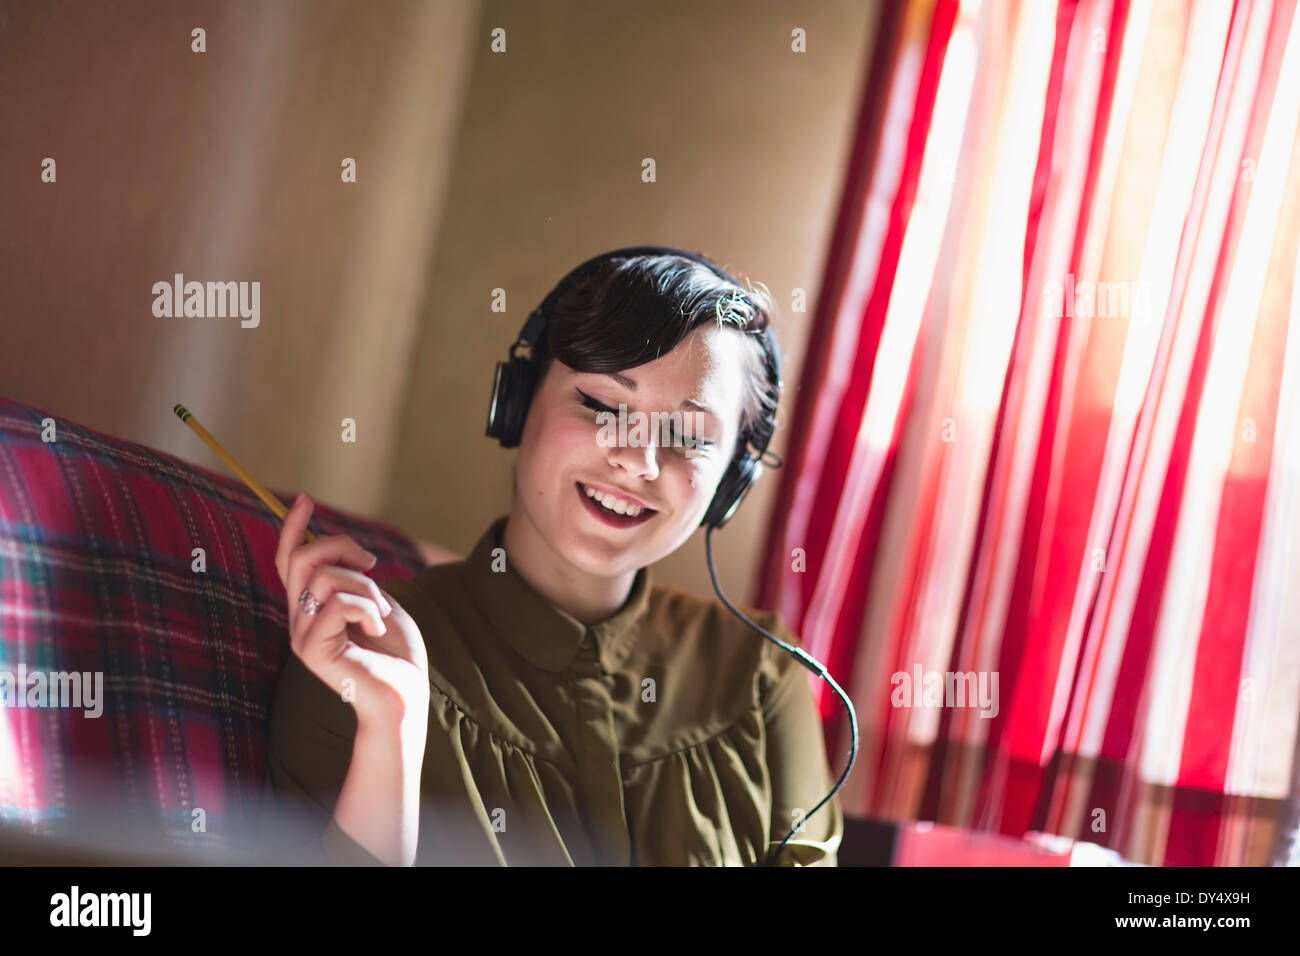 Young woman listening to music Photo Stock